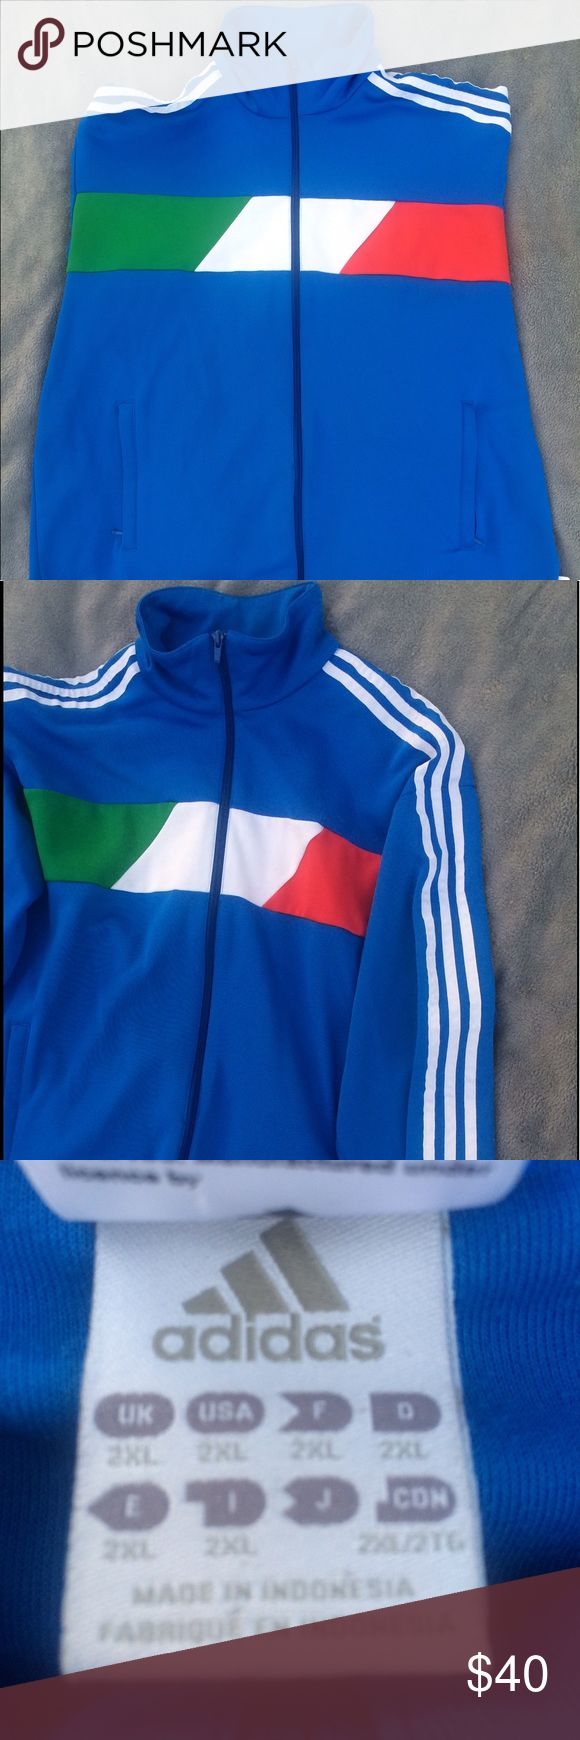 Men's Adidas Italia Soccer Jacket Men's Adidas Italia Soccer Jacket. In great condition looks brand new! Special Italy Jacket from the soccer World Cup. adidas Jackets & Coats